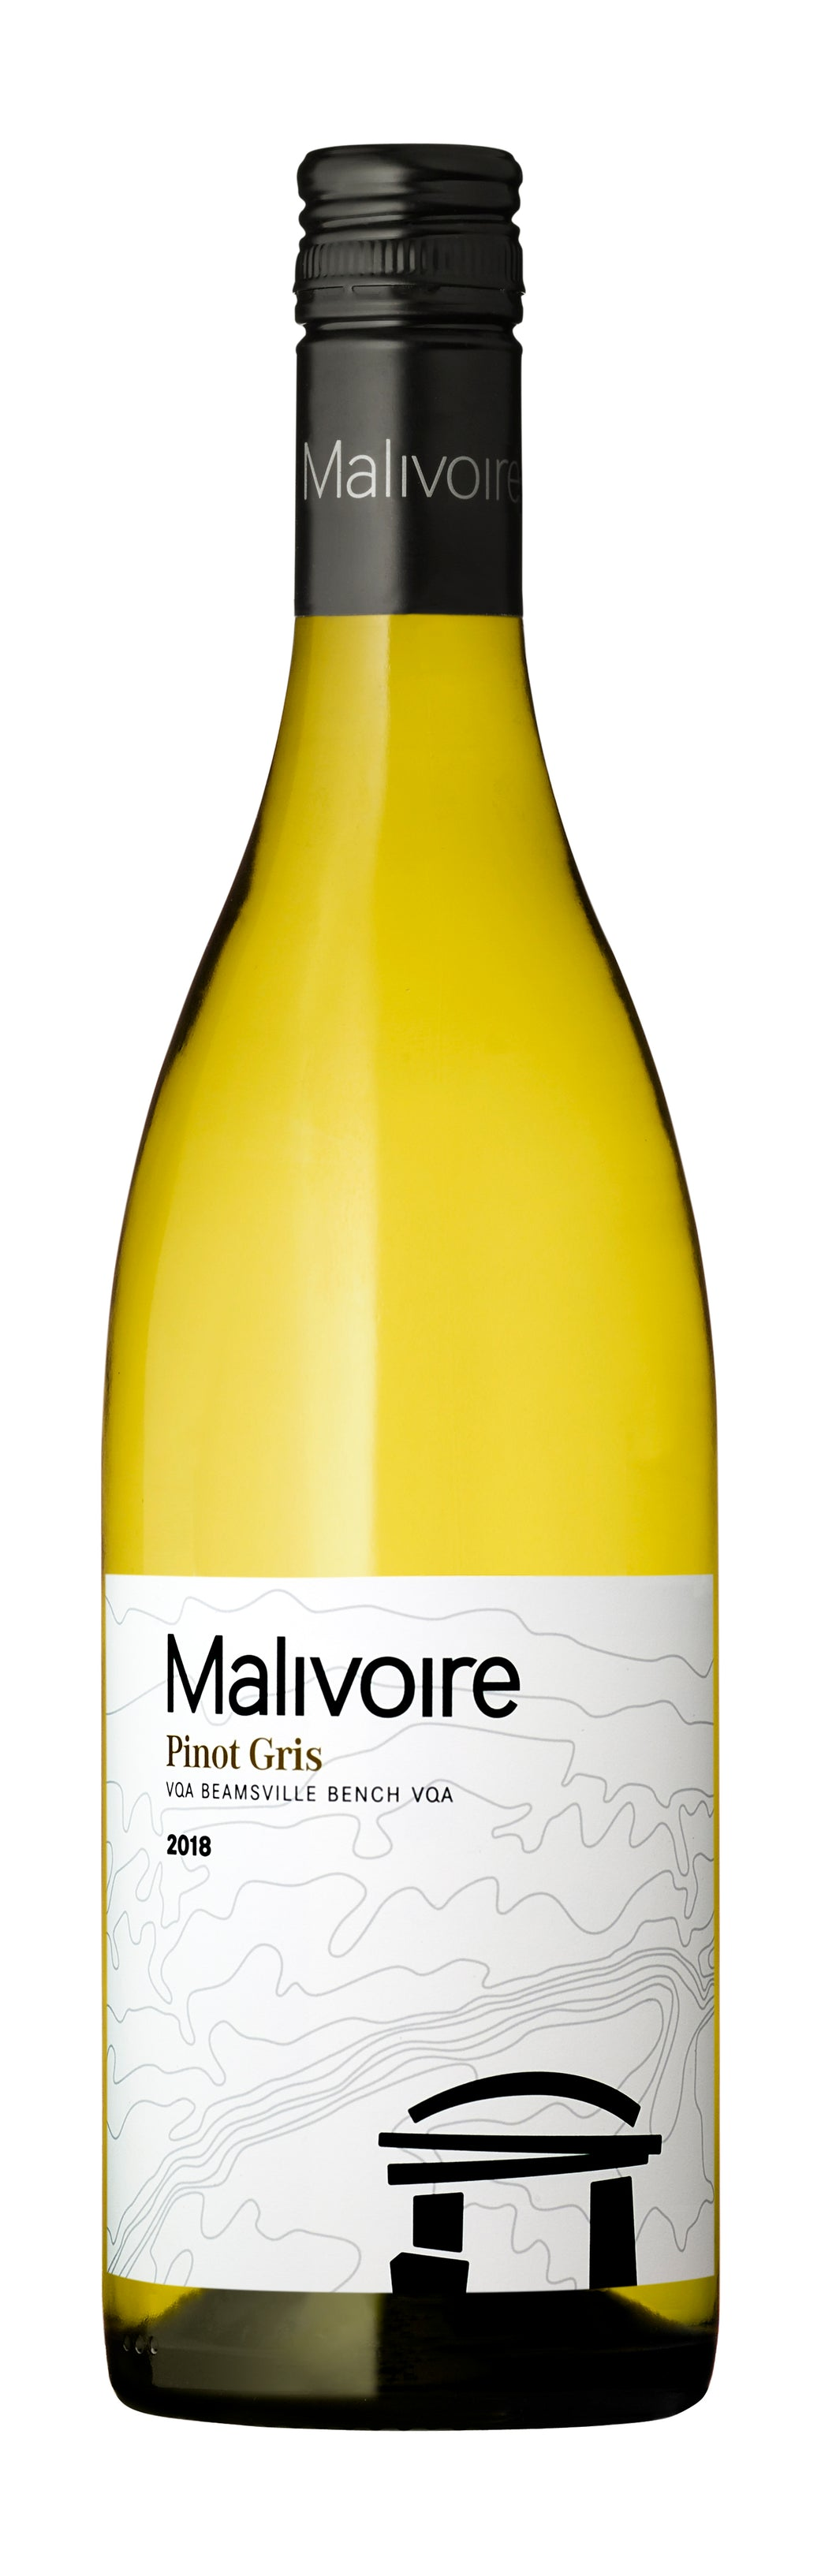 2018 Pinot Gris, Malivoire Wine, VQA Beamsville Bench